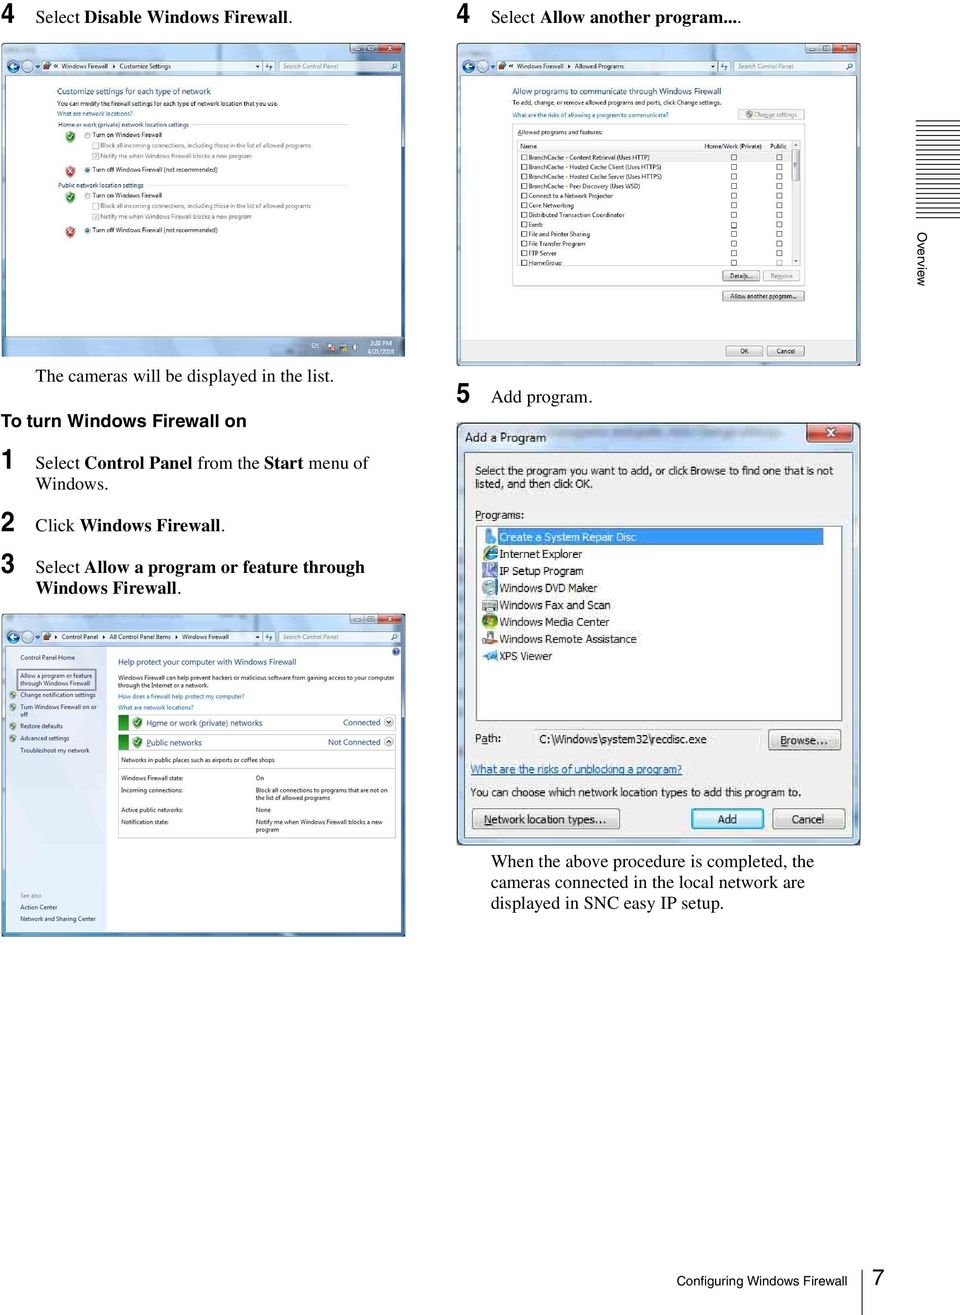 2 Click Windows Firewall. 3 Select Allow a program or feature through Windows Firewall.